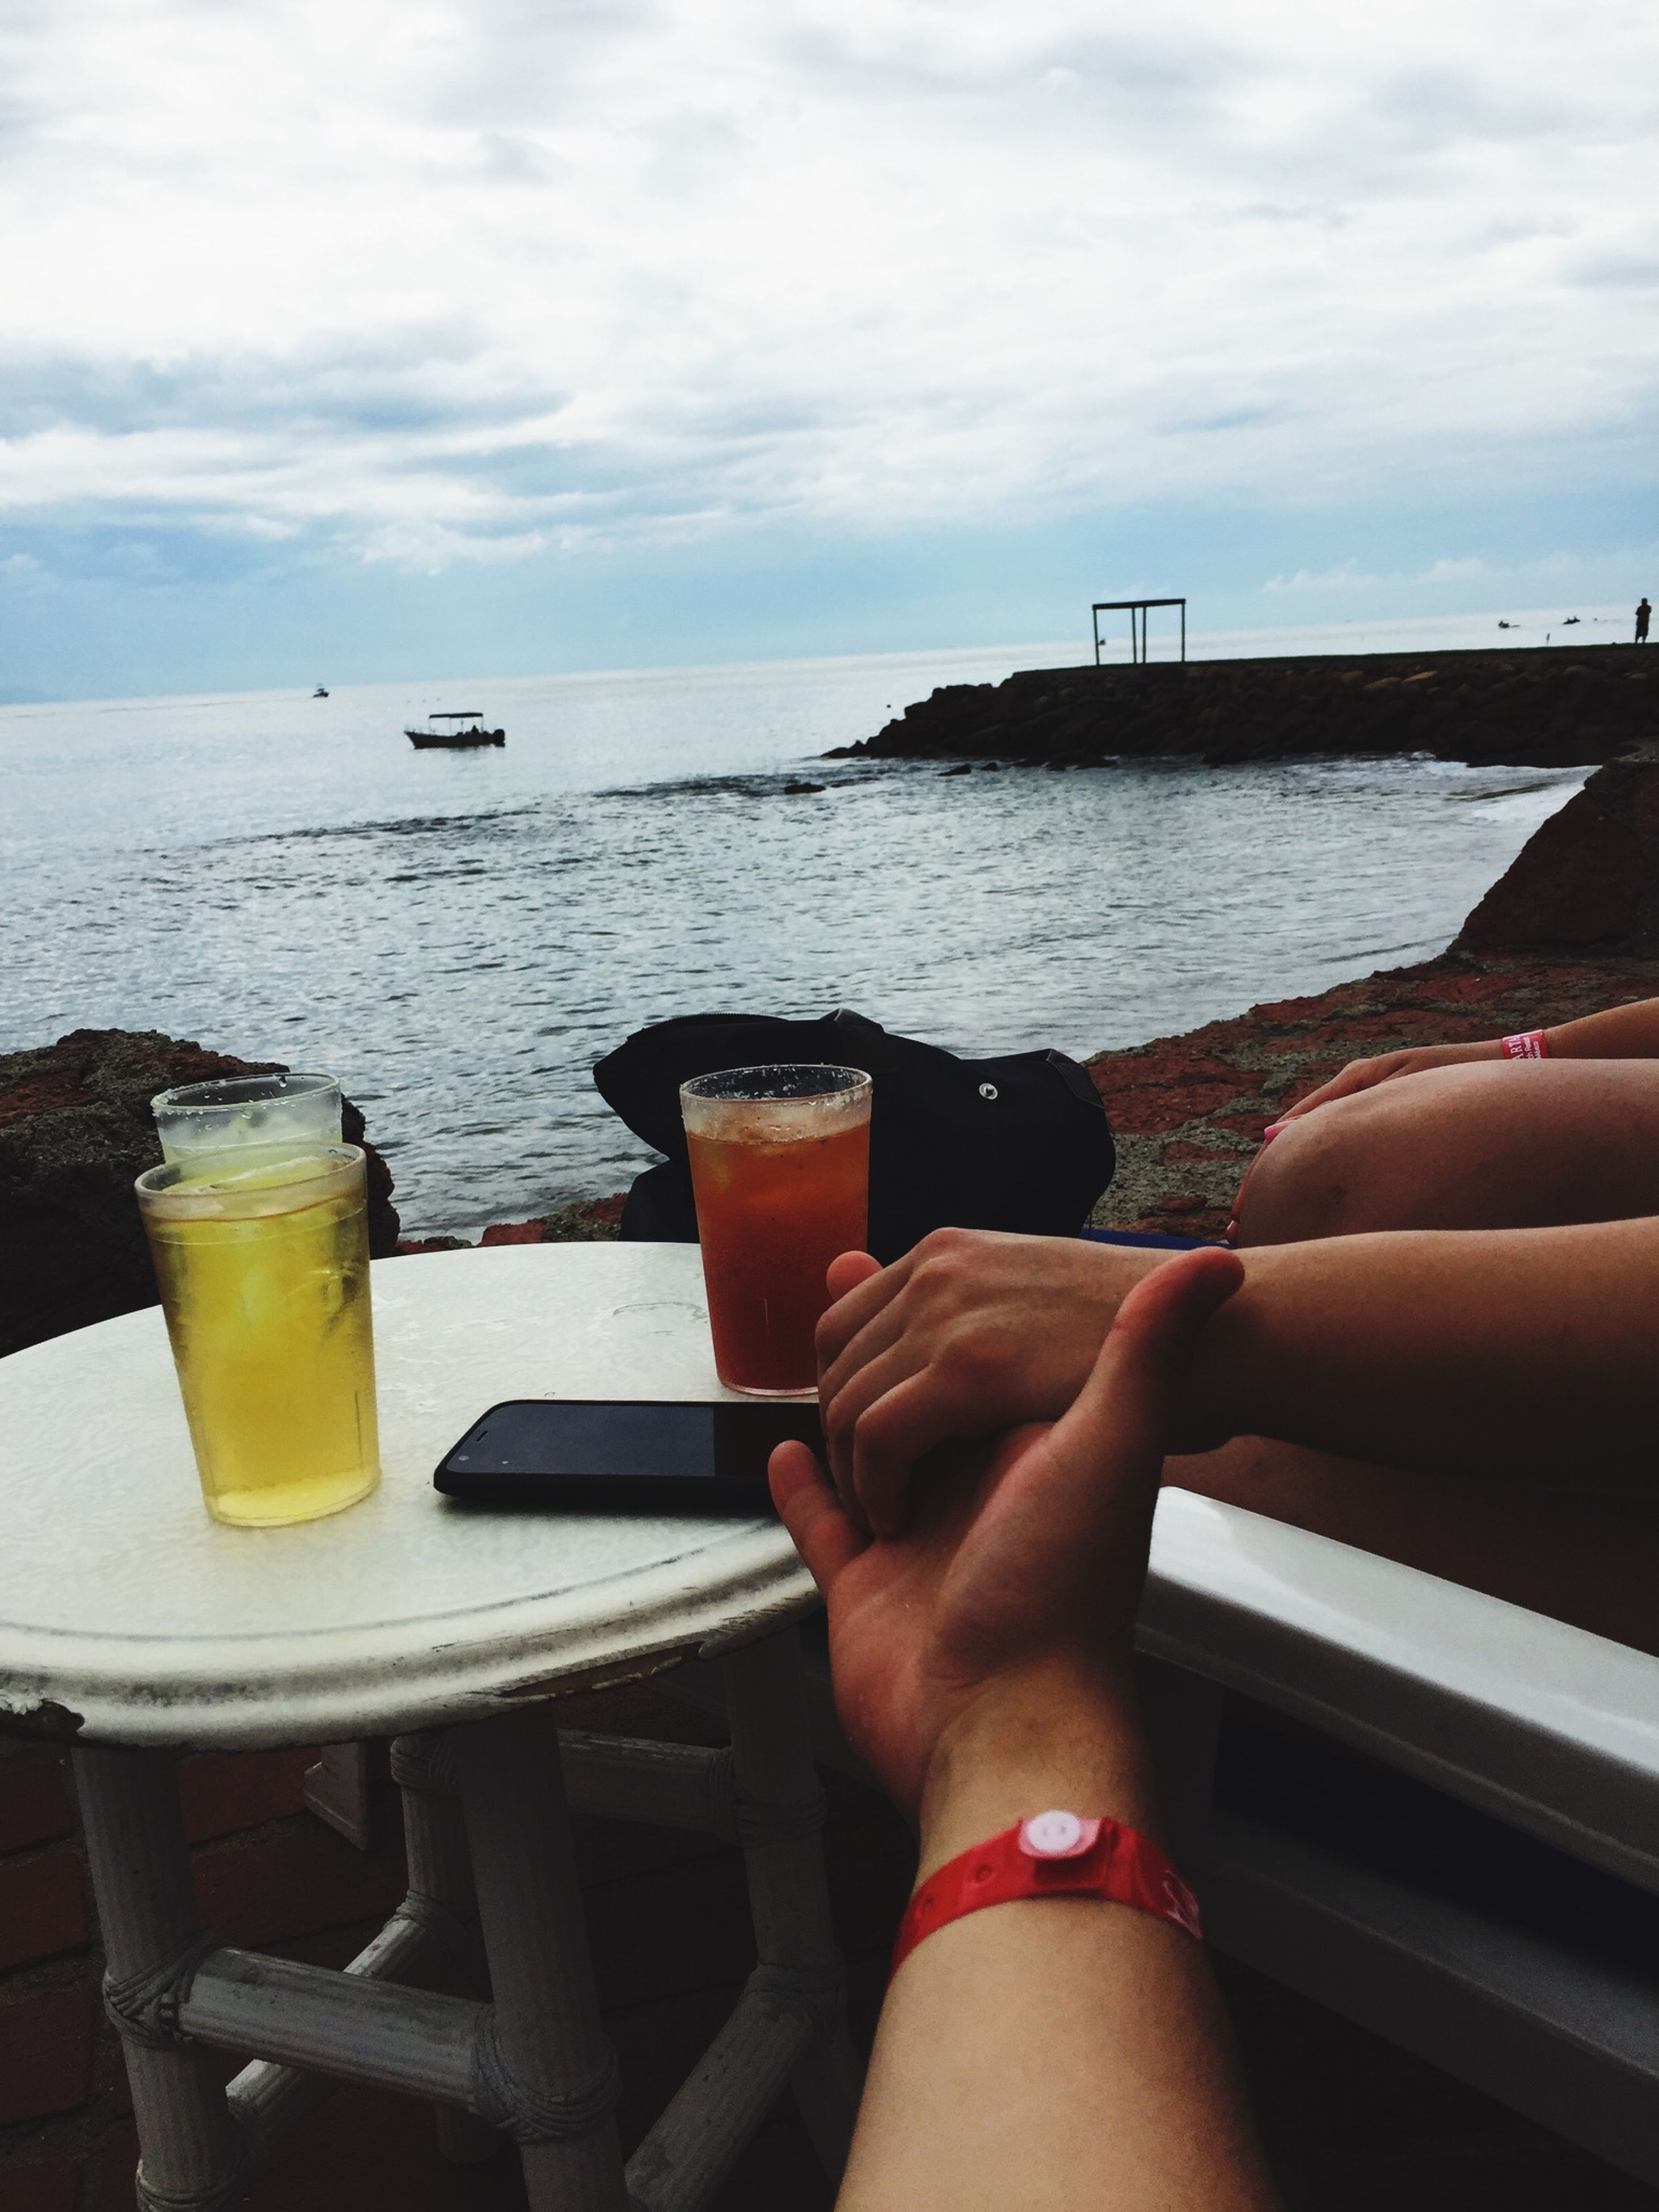 sea, drink, personal perspective, water, refreshment, food and drink, part of, horizon over water, lifestyles, sky, person, leisure activity, cropped, beach, holding, low section